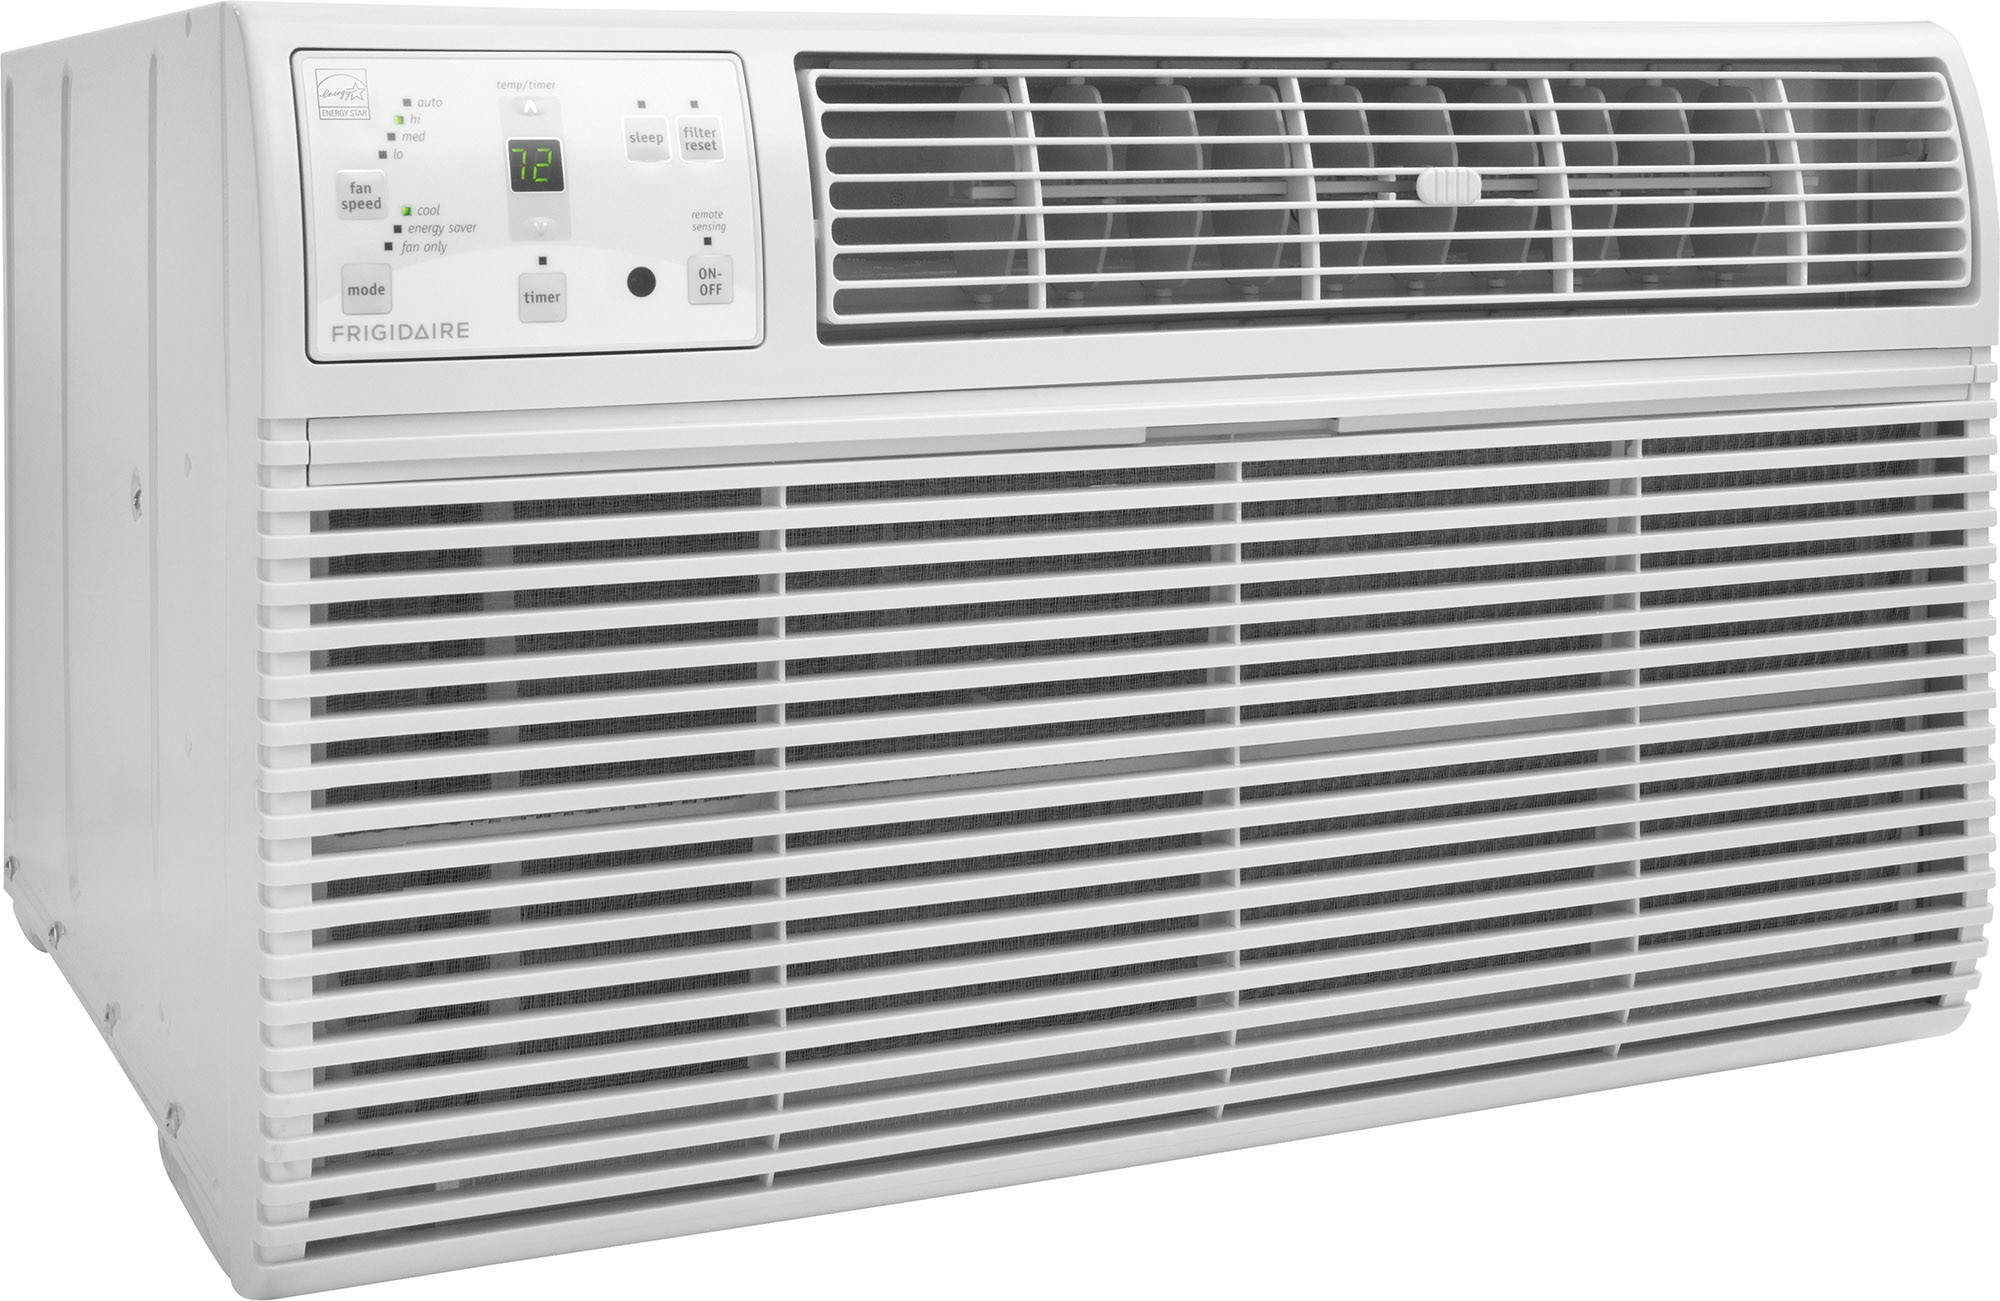 window air conditioner clipart. window air conditioner clipart